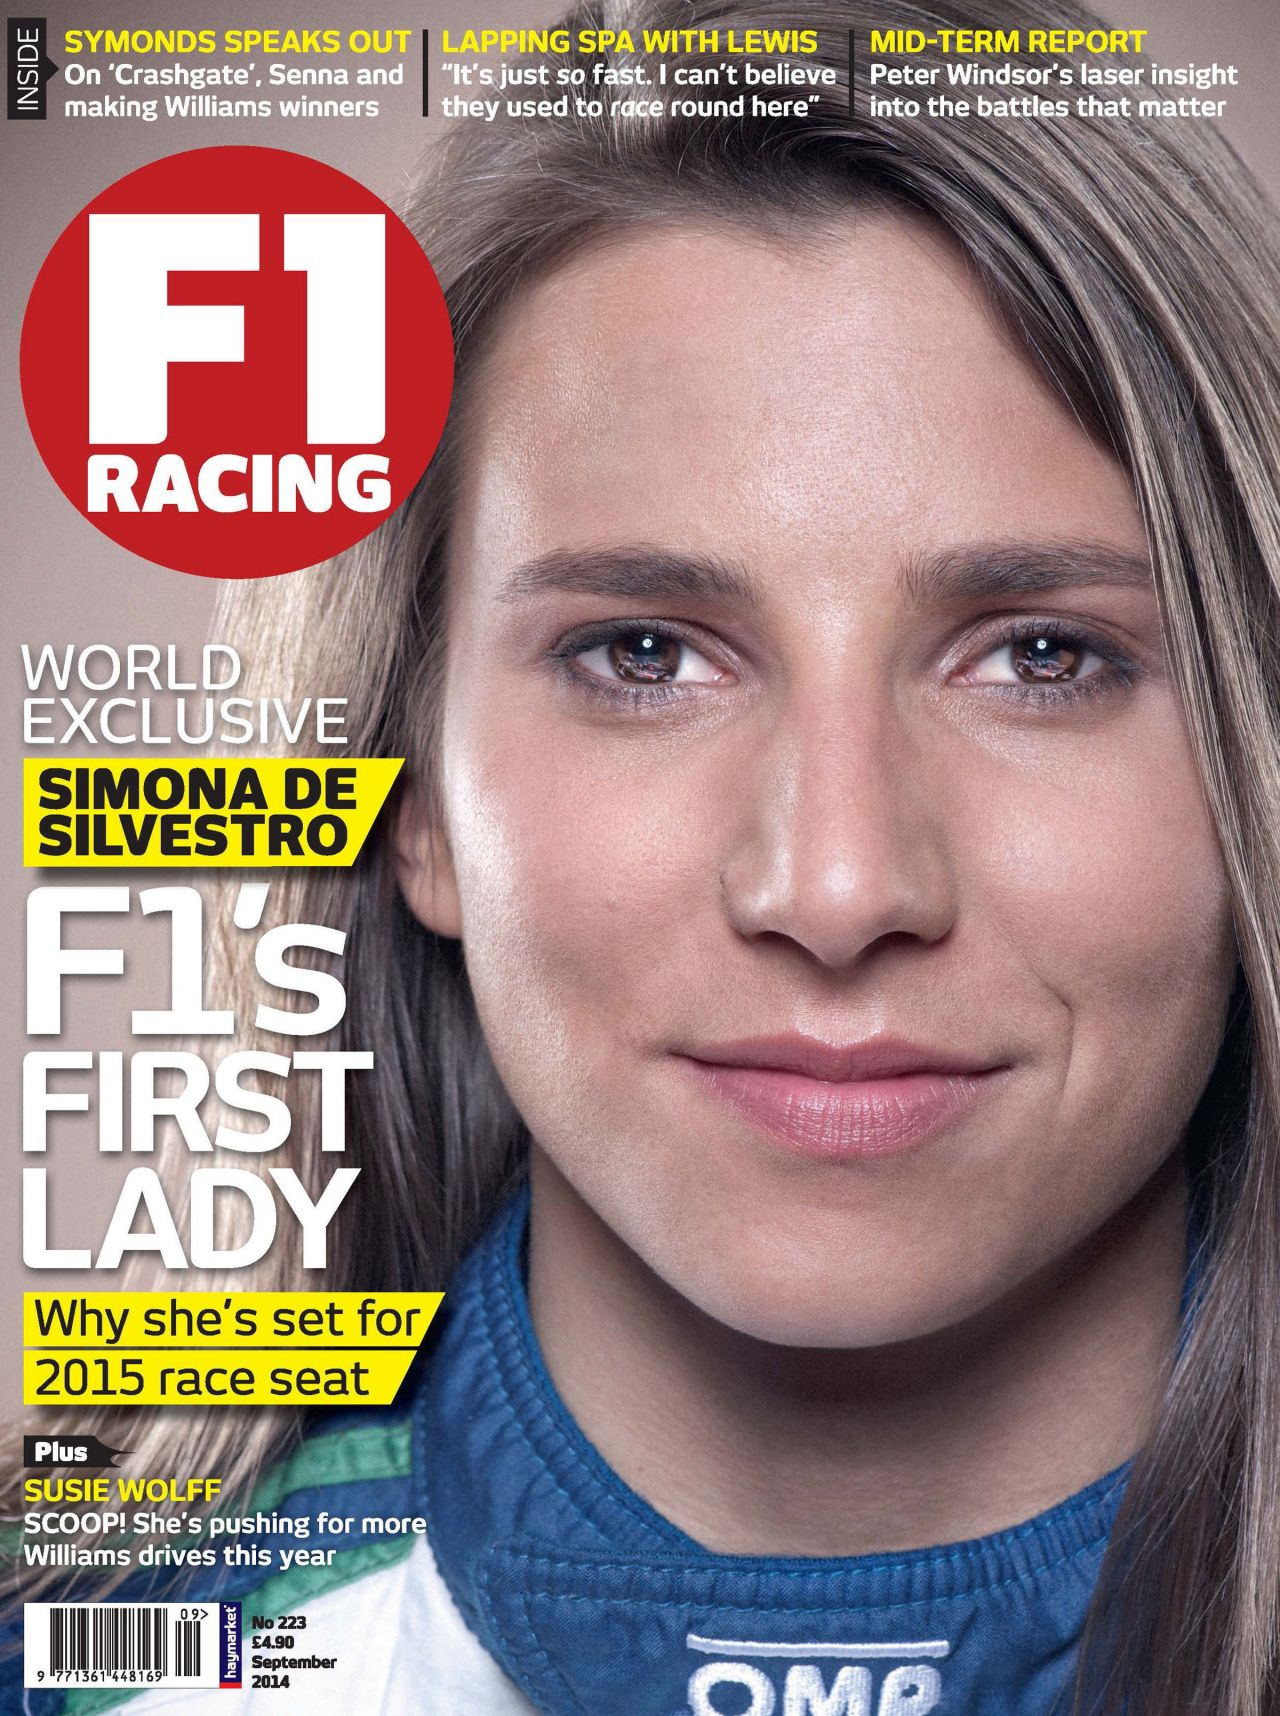 Simona De Silvestro Latest Photos Celebmafia